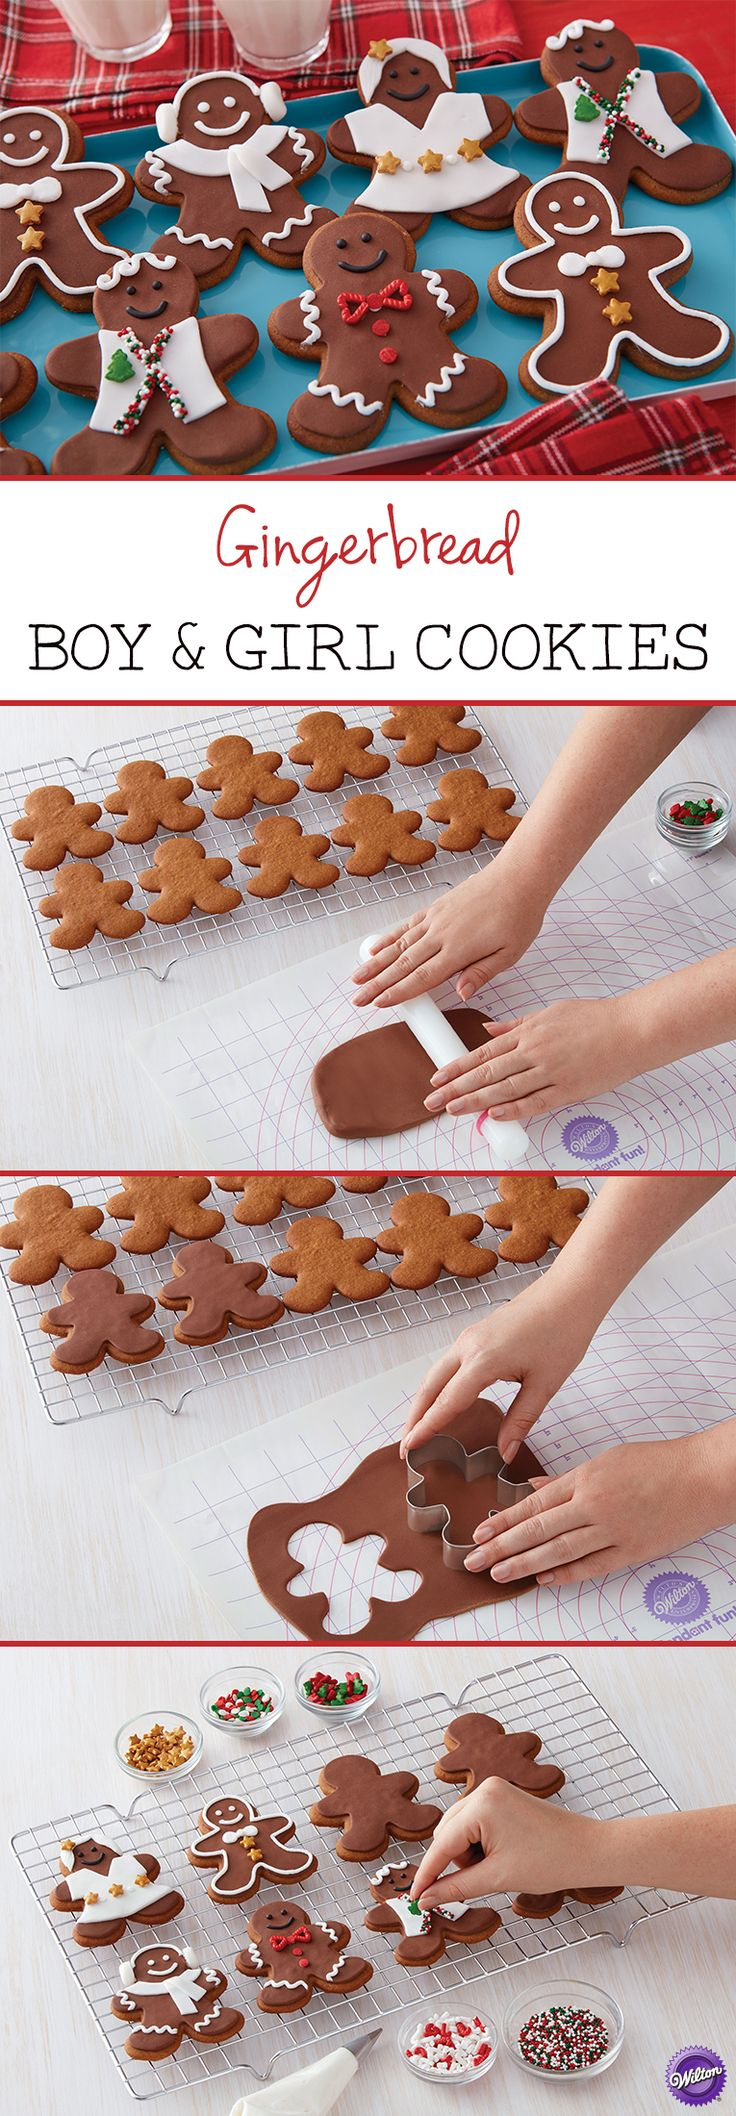 It's easy to create different boy and girl gingerbread cookies using fondant! These gingerbread cookies will be fun to decorate for kids of all ages.